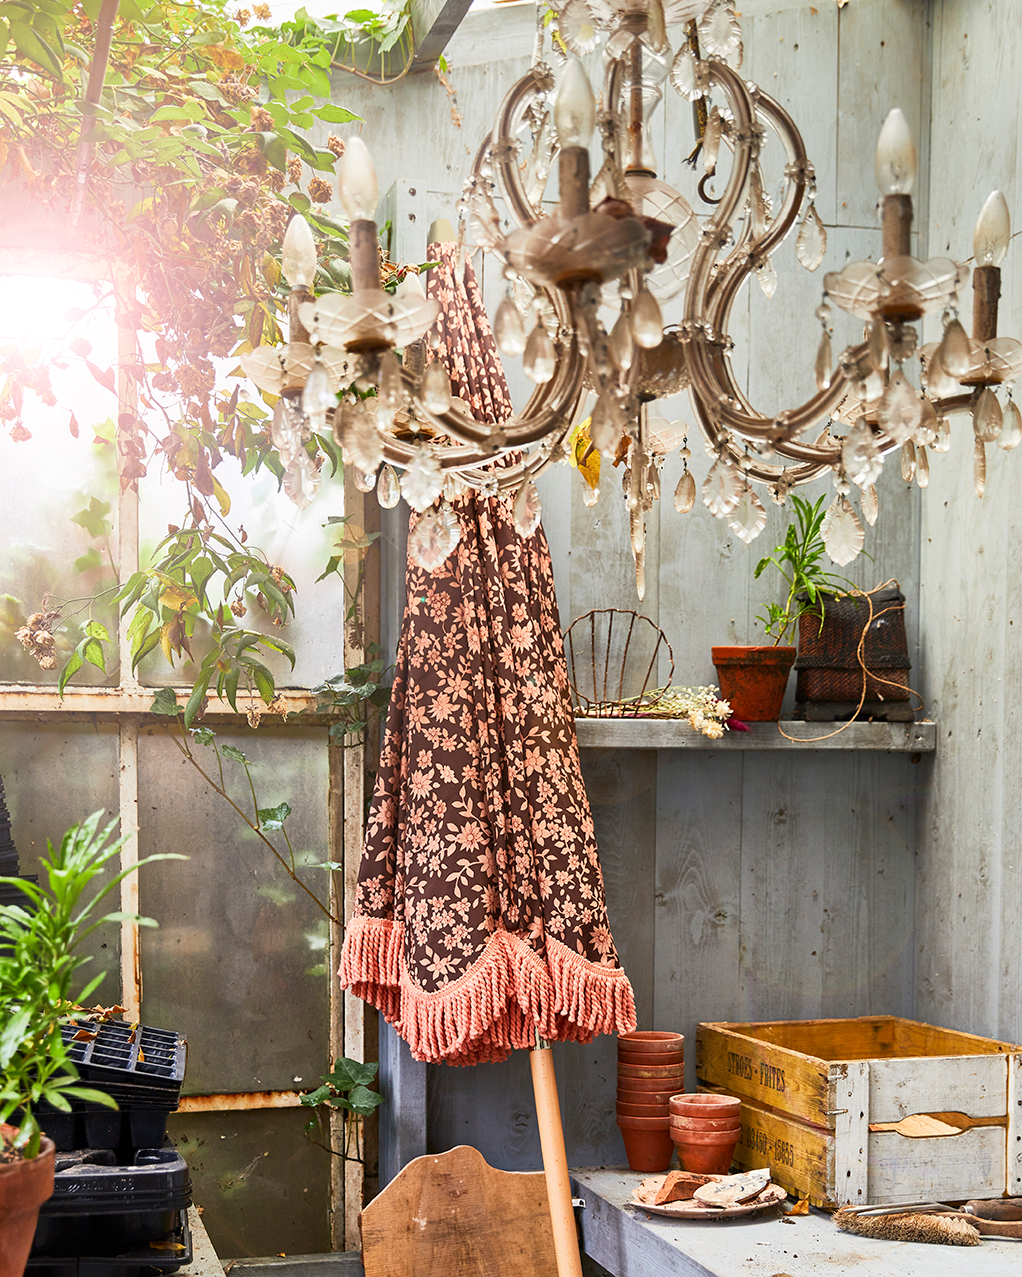 DORIS for HKLIVING: beach umbrella vintage floral